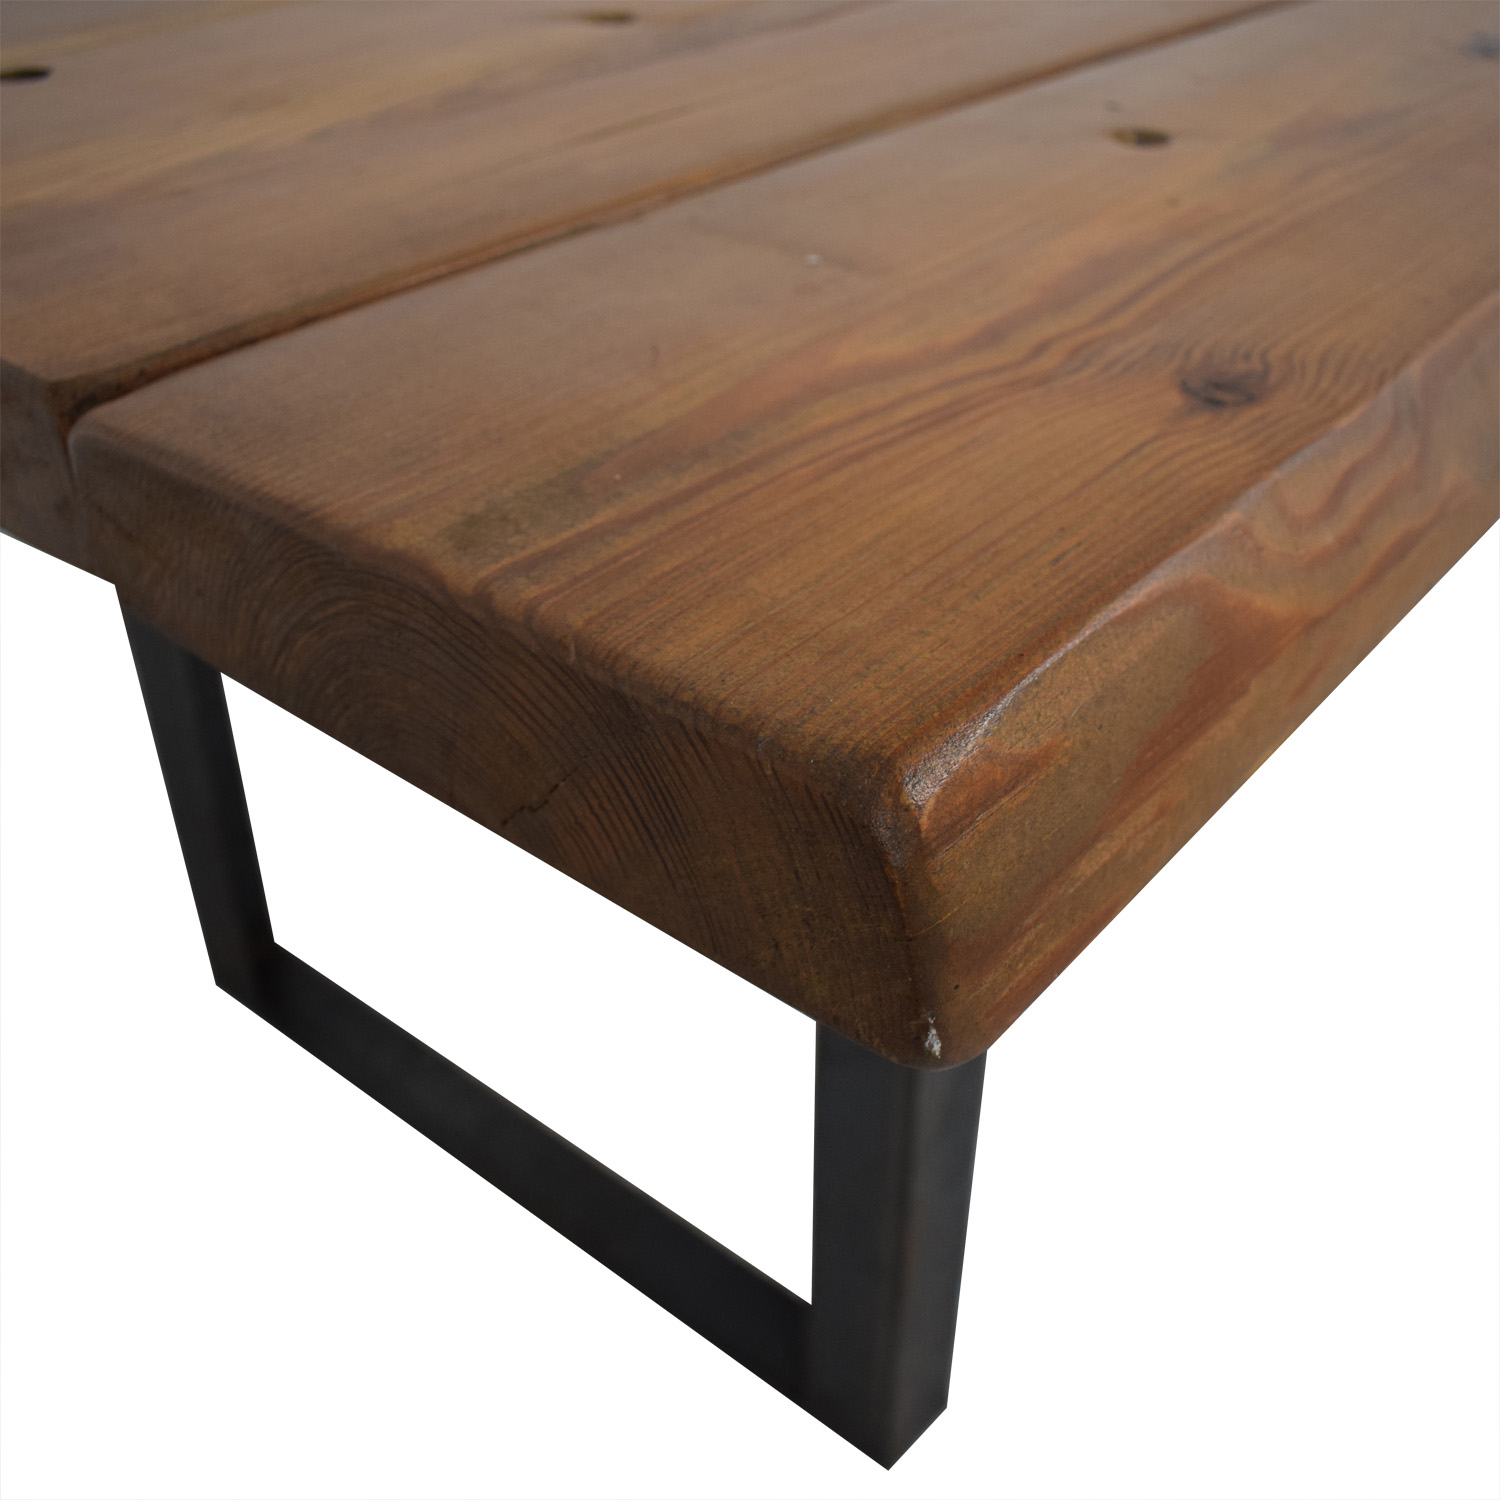 Pascal Benichou Industrial Rustic Wood Dining Table sale